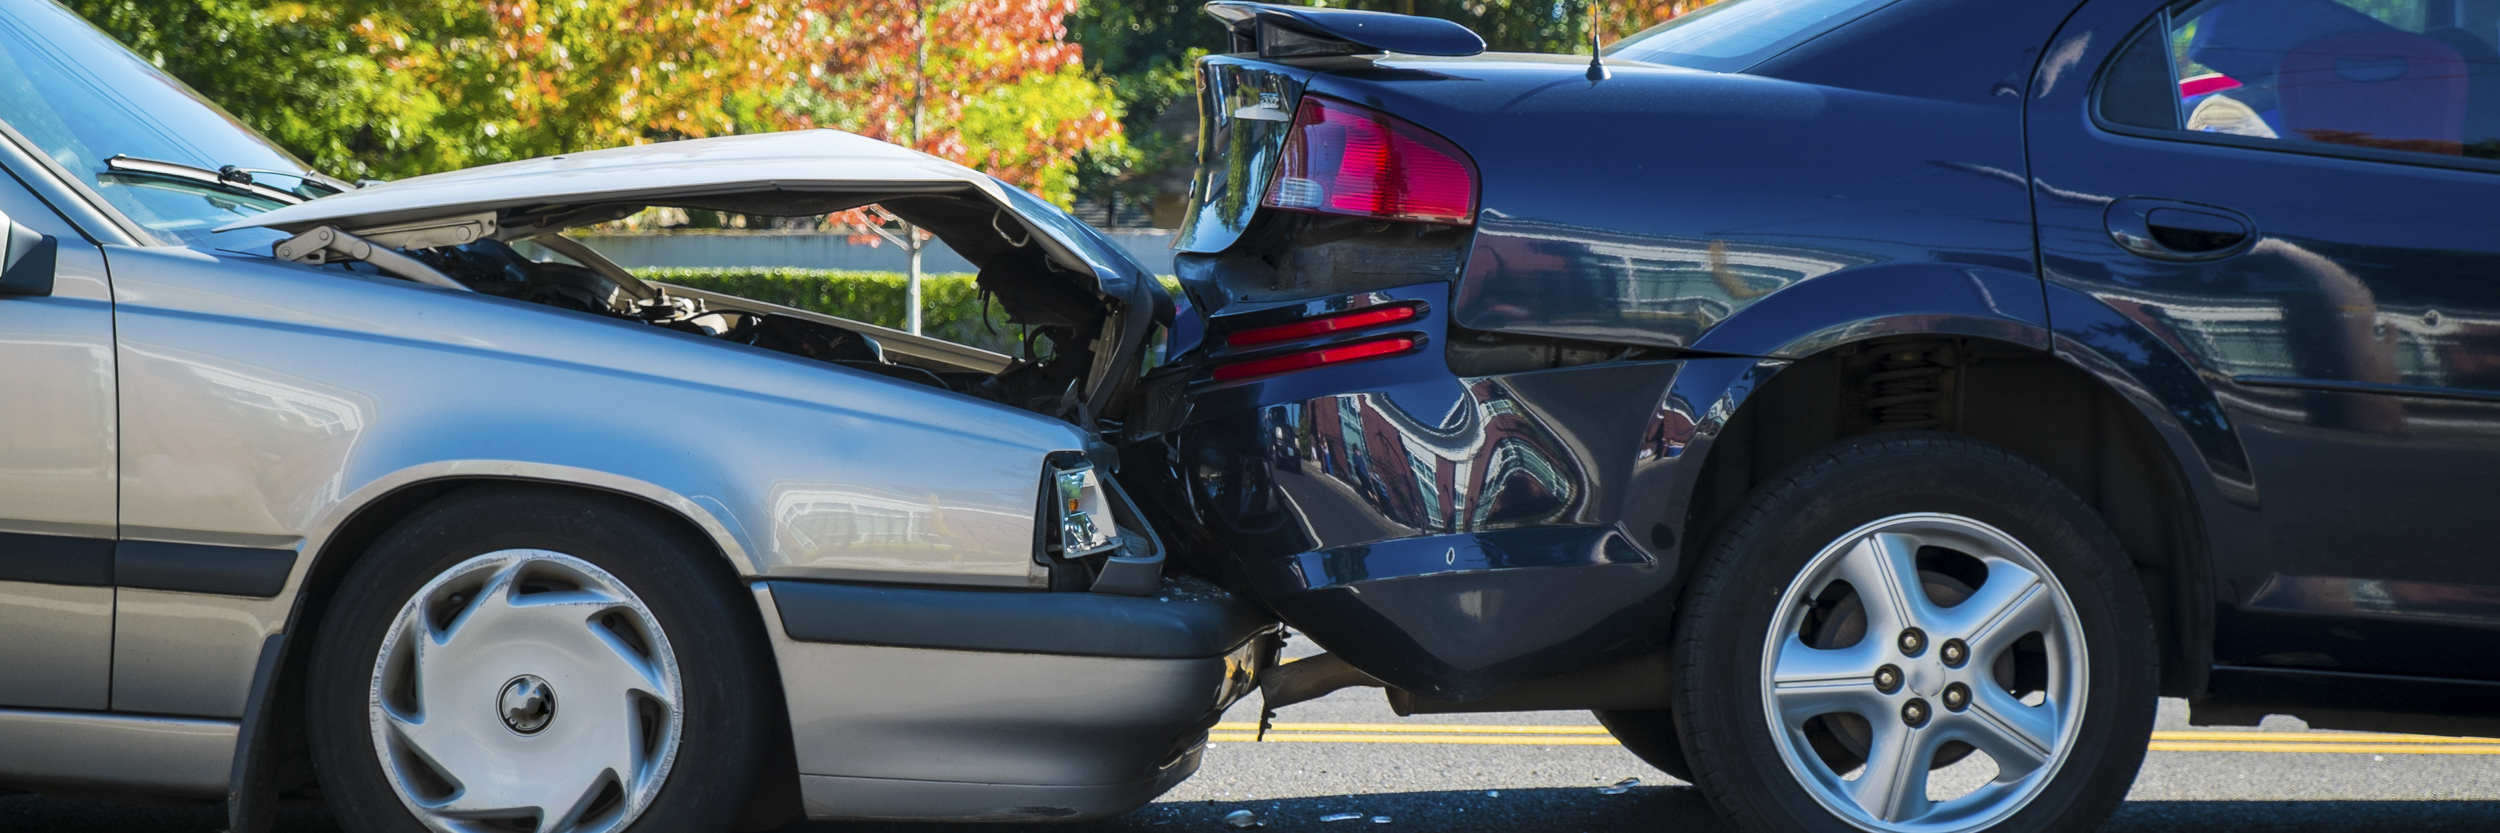 Every year, 400,000 people will be injured in a distracted driving accident.